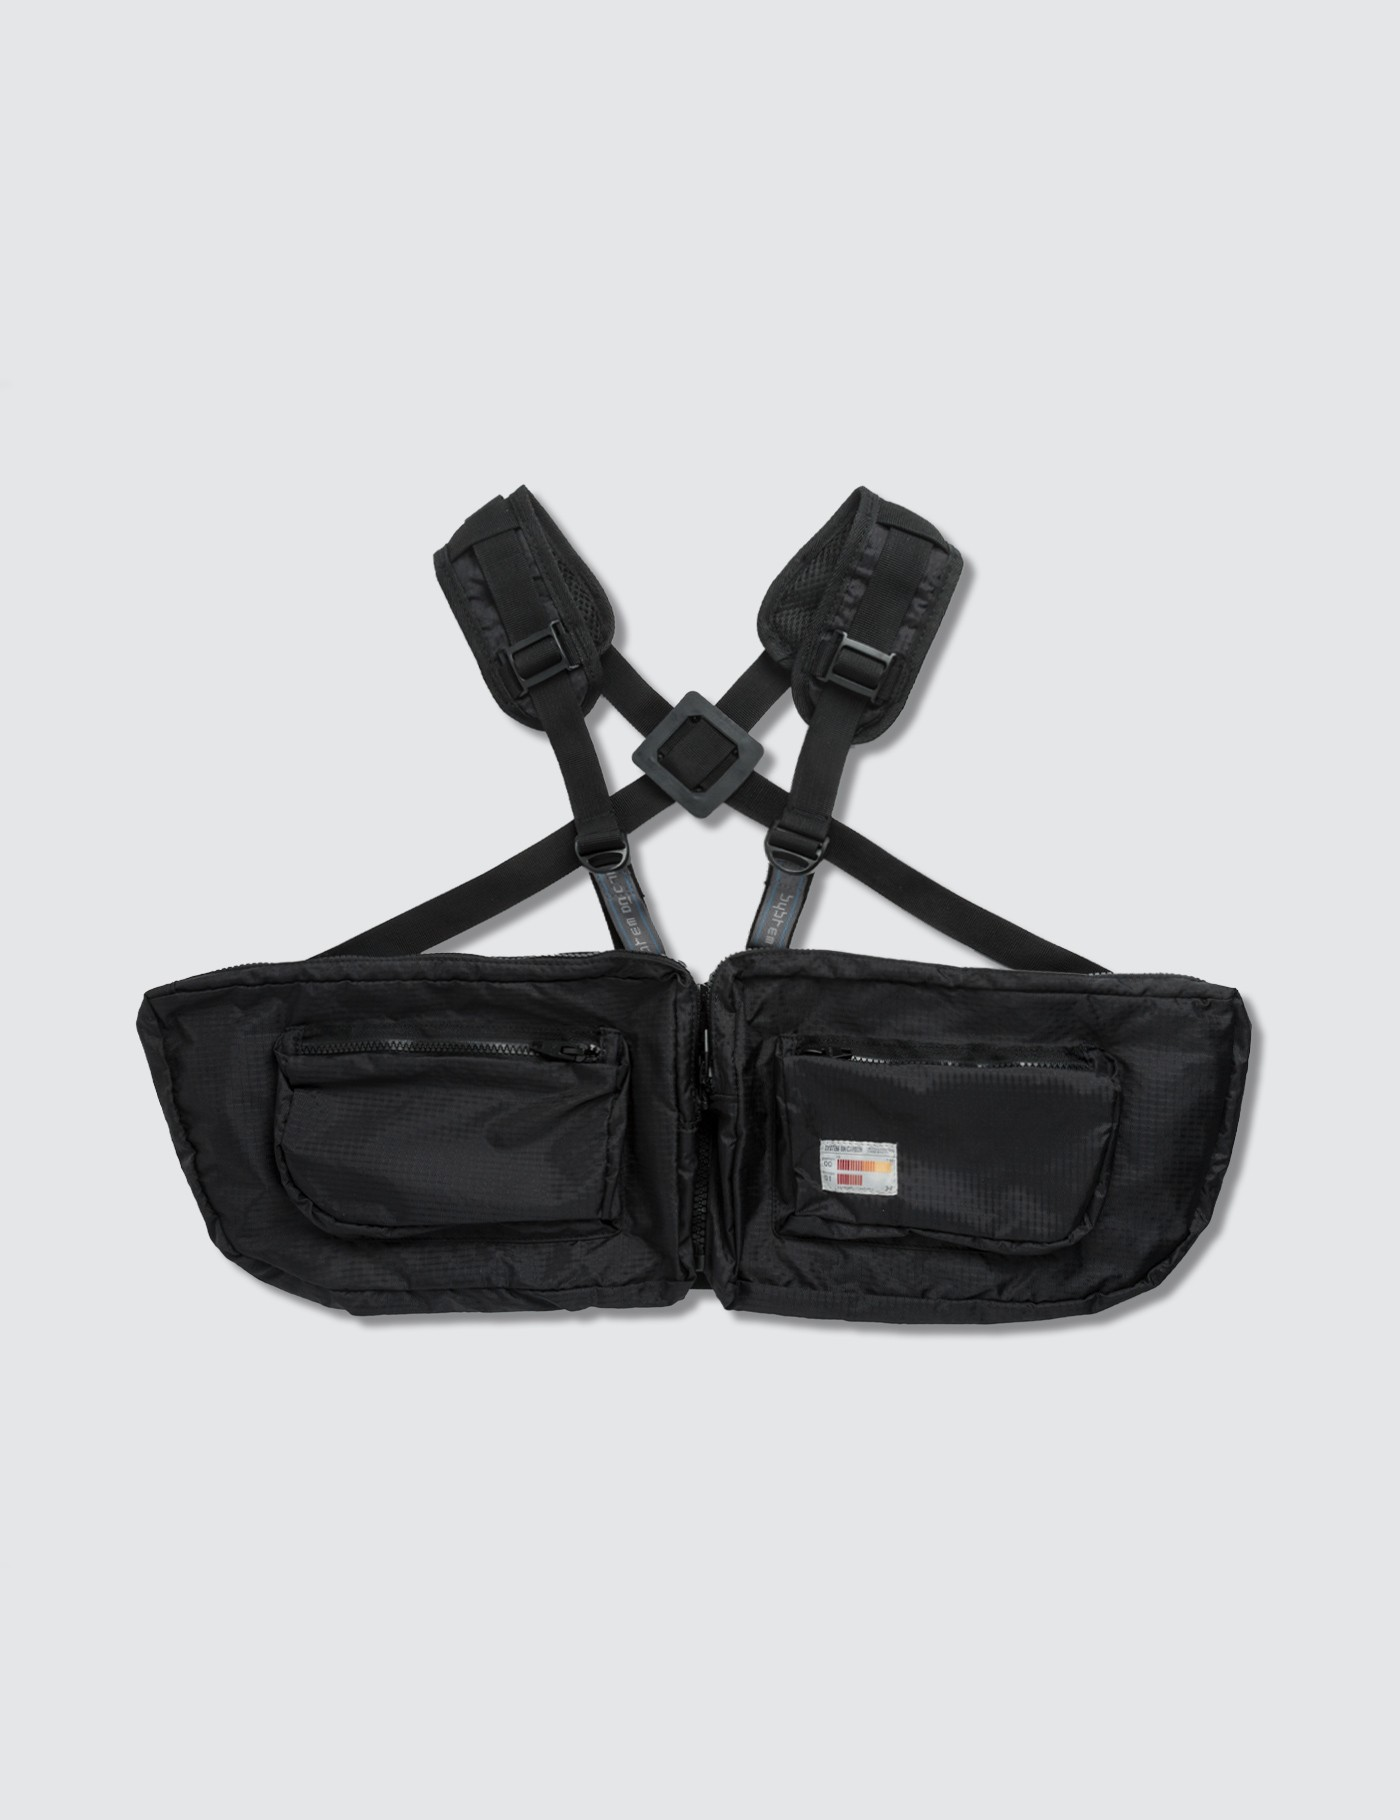 C2H4 Los Angeles Tactical Waist Pack Picture